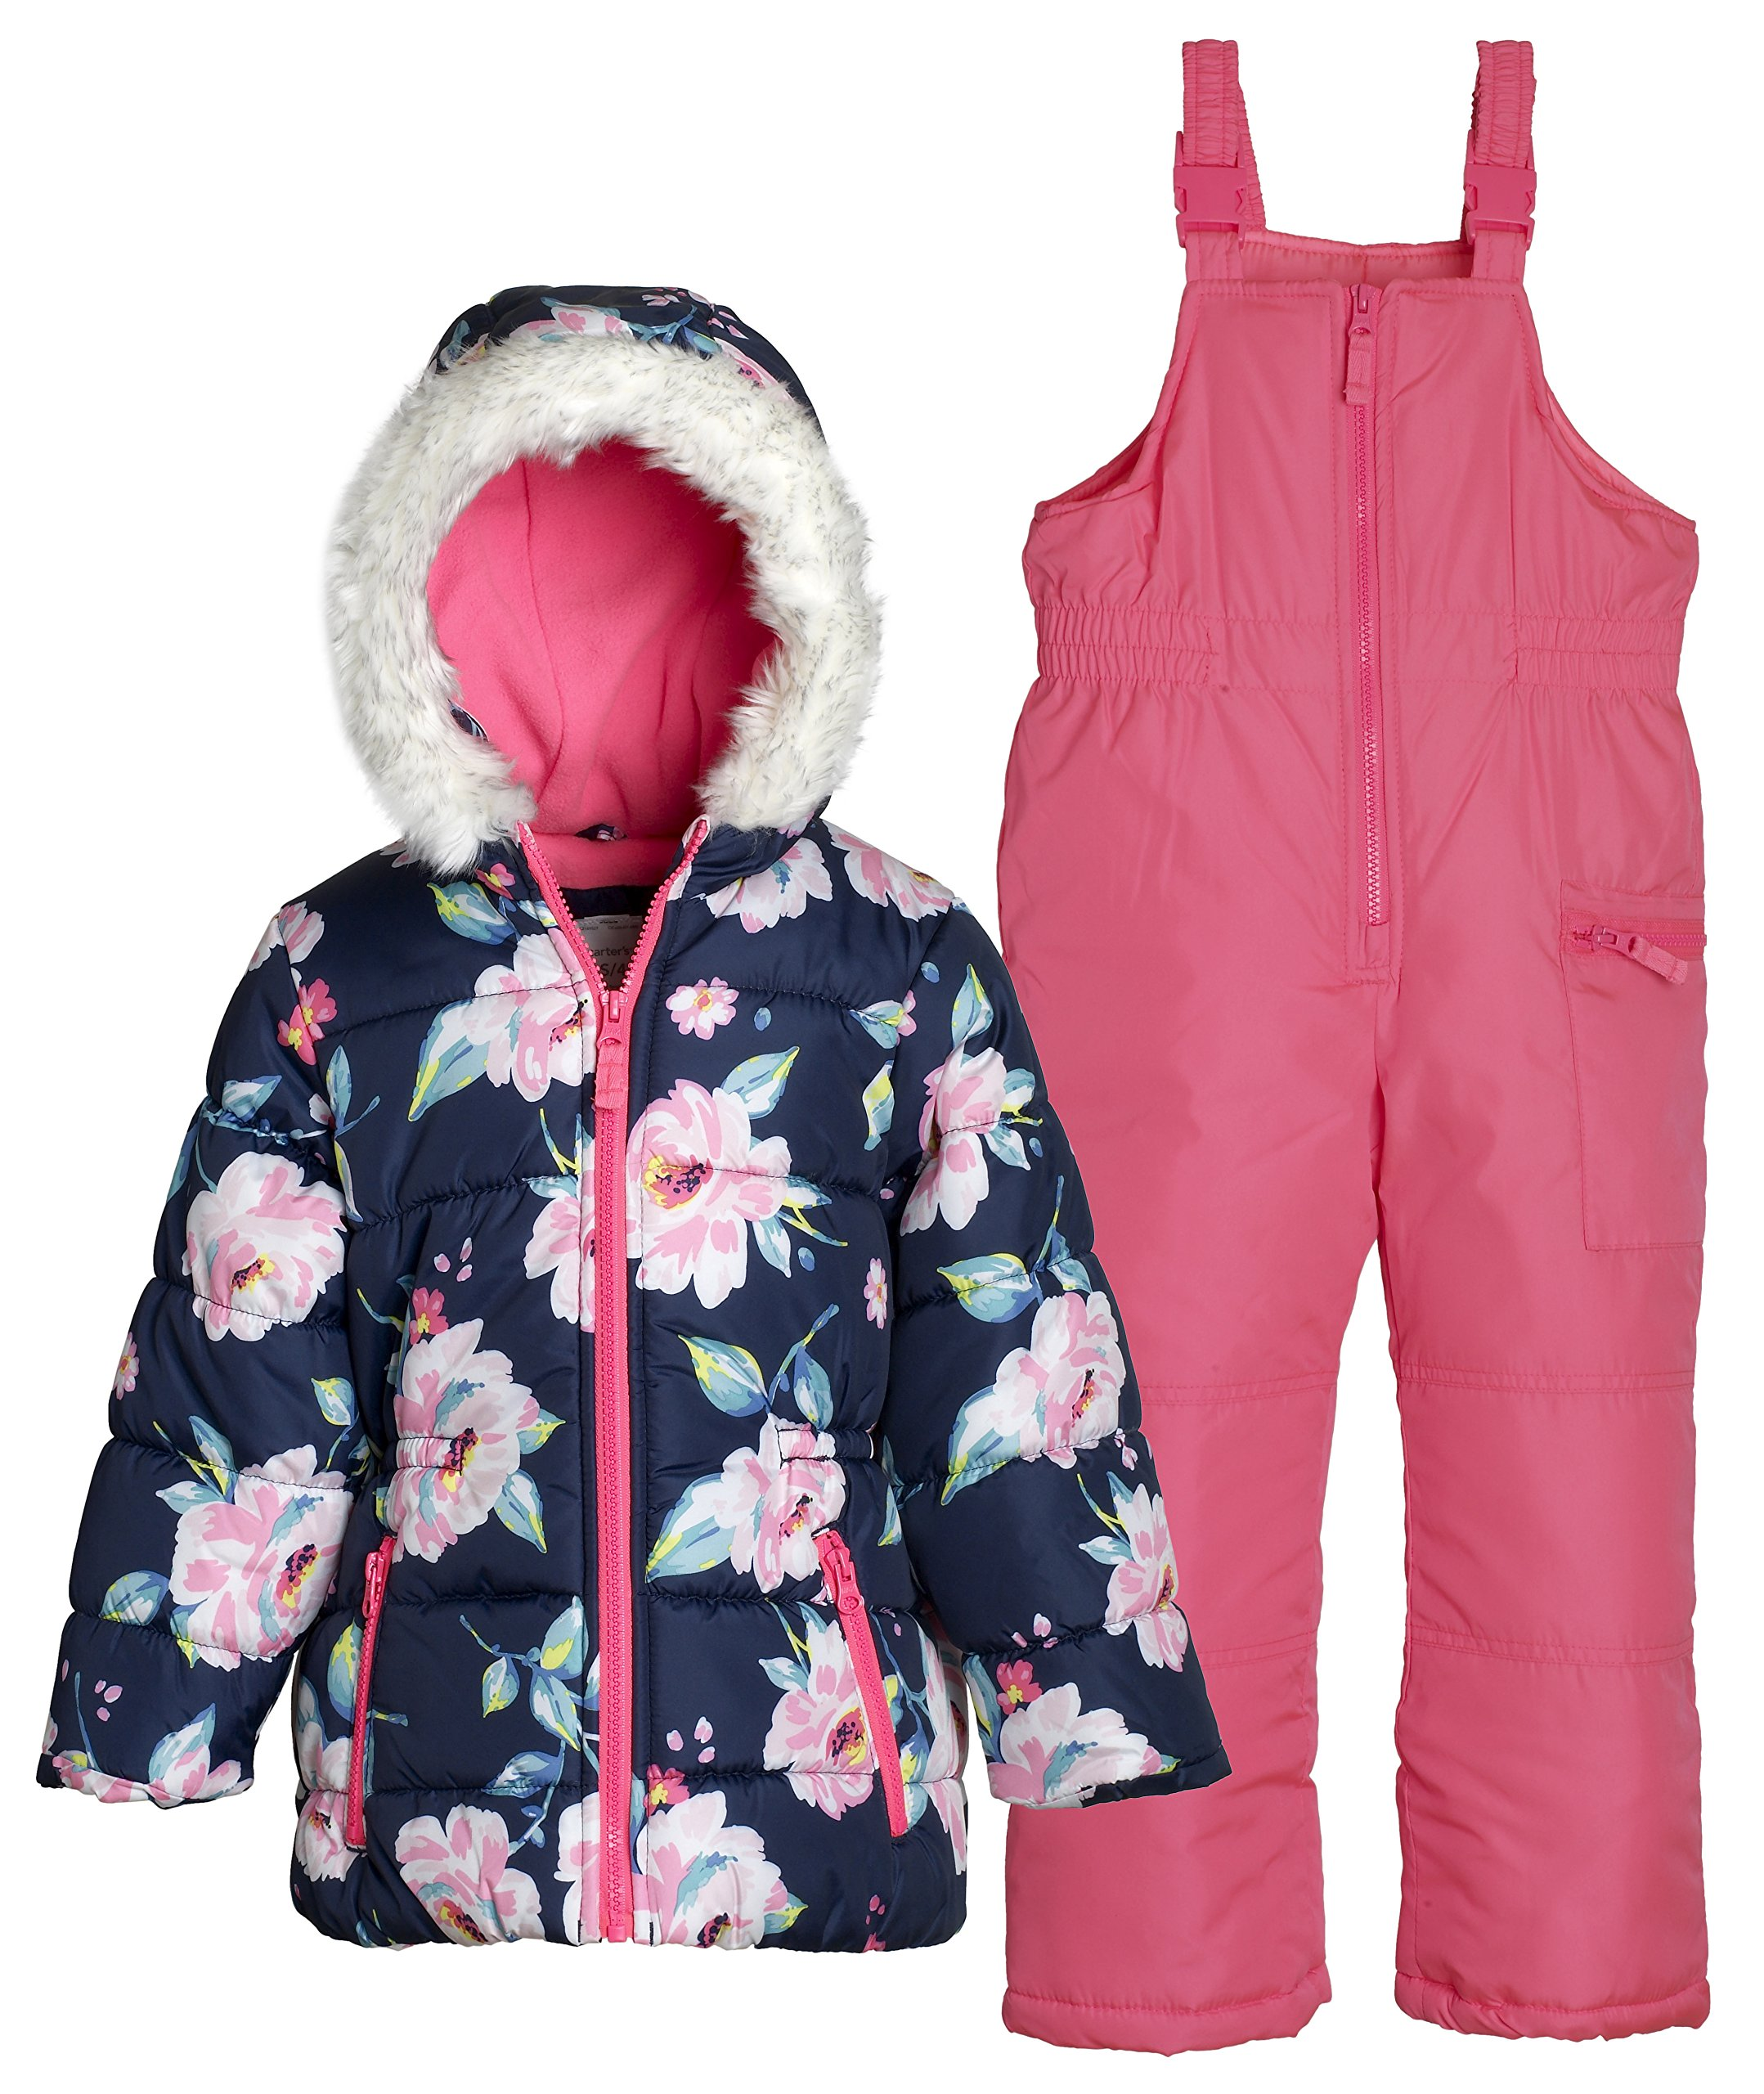 Carter's Baby Girls' 2-Piece Floral Jacket And Snow Pants Set 12 Months